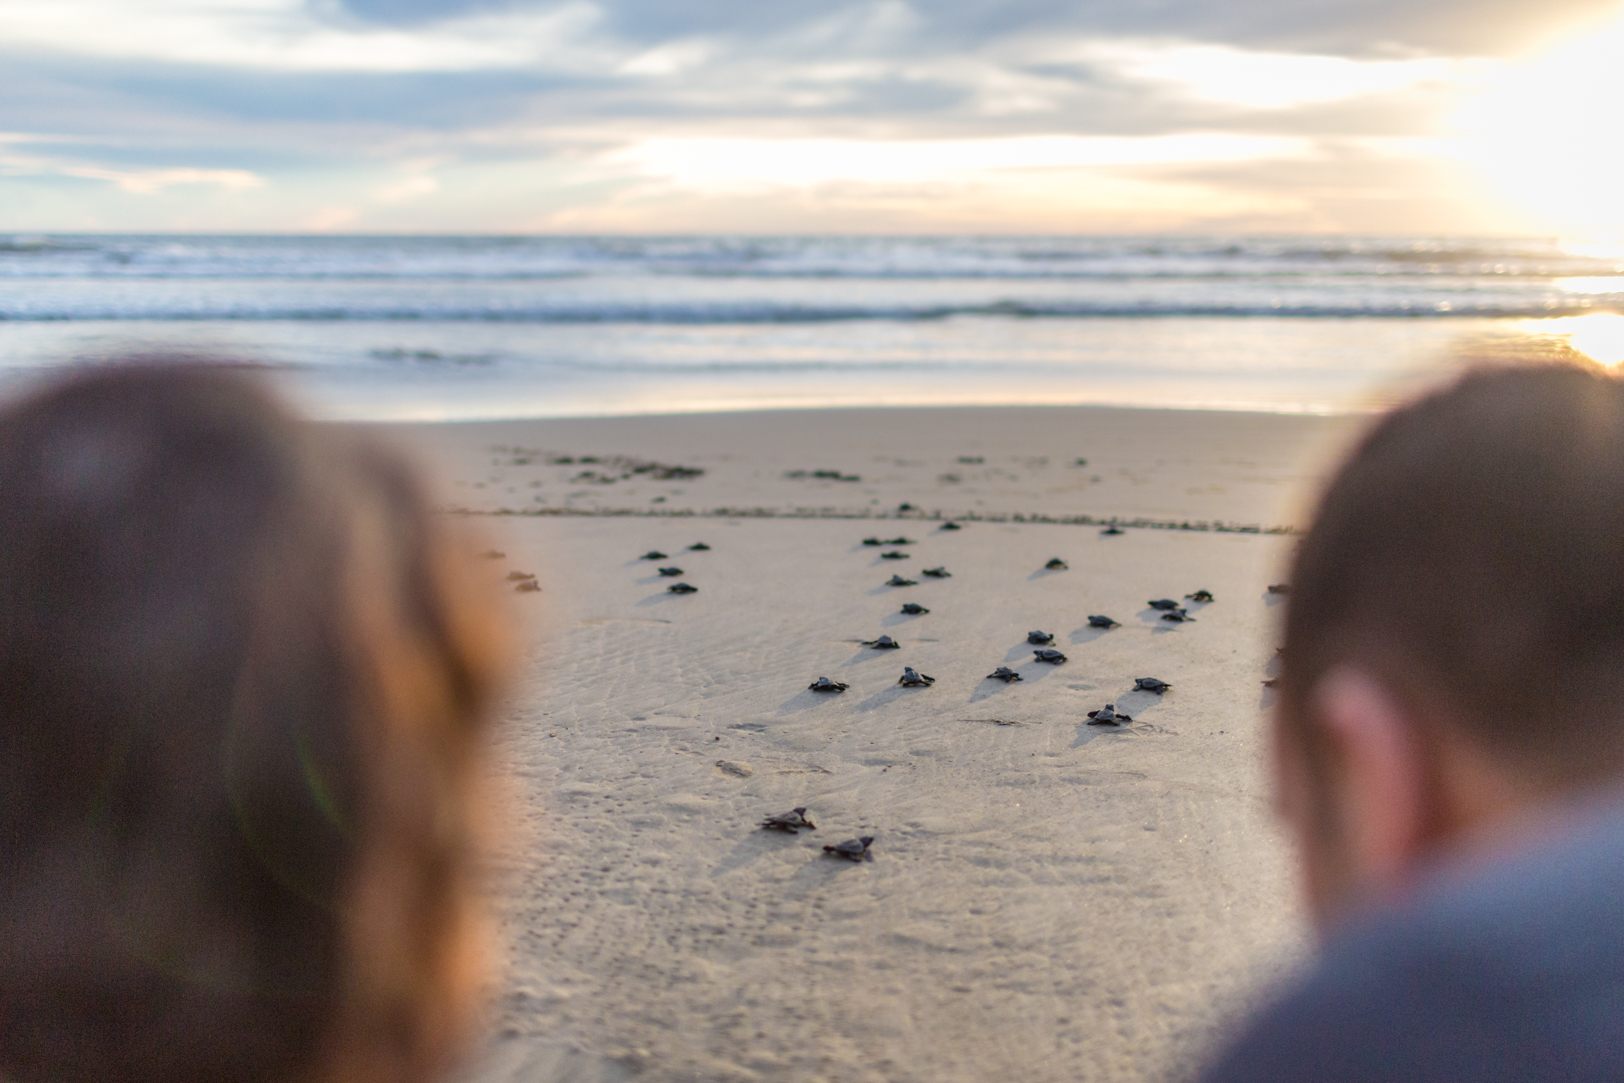 releasing turtles into the ocean during an Ixtapa Destination Wedding